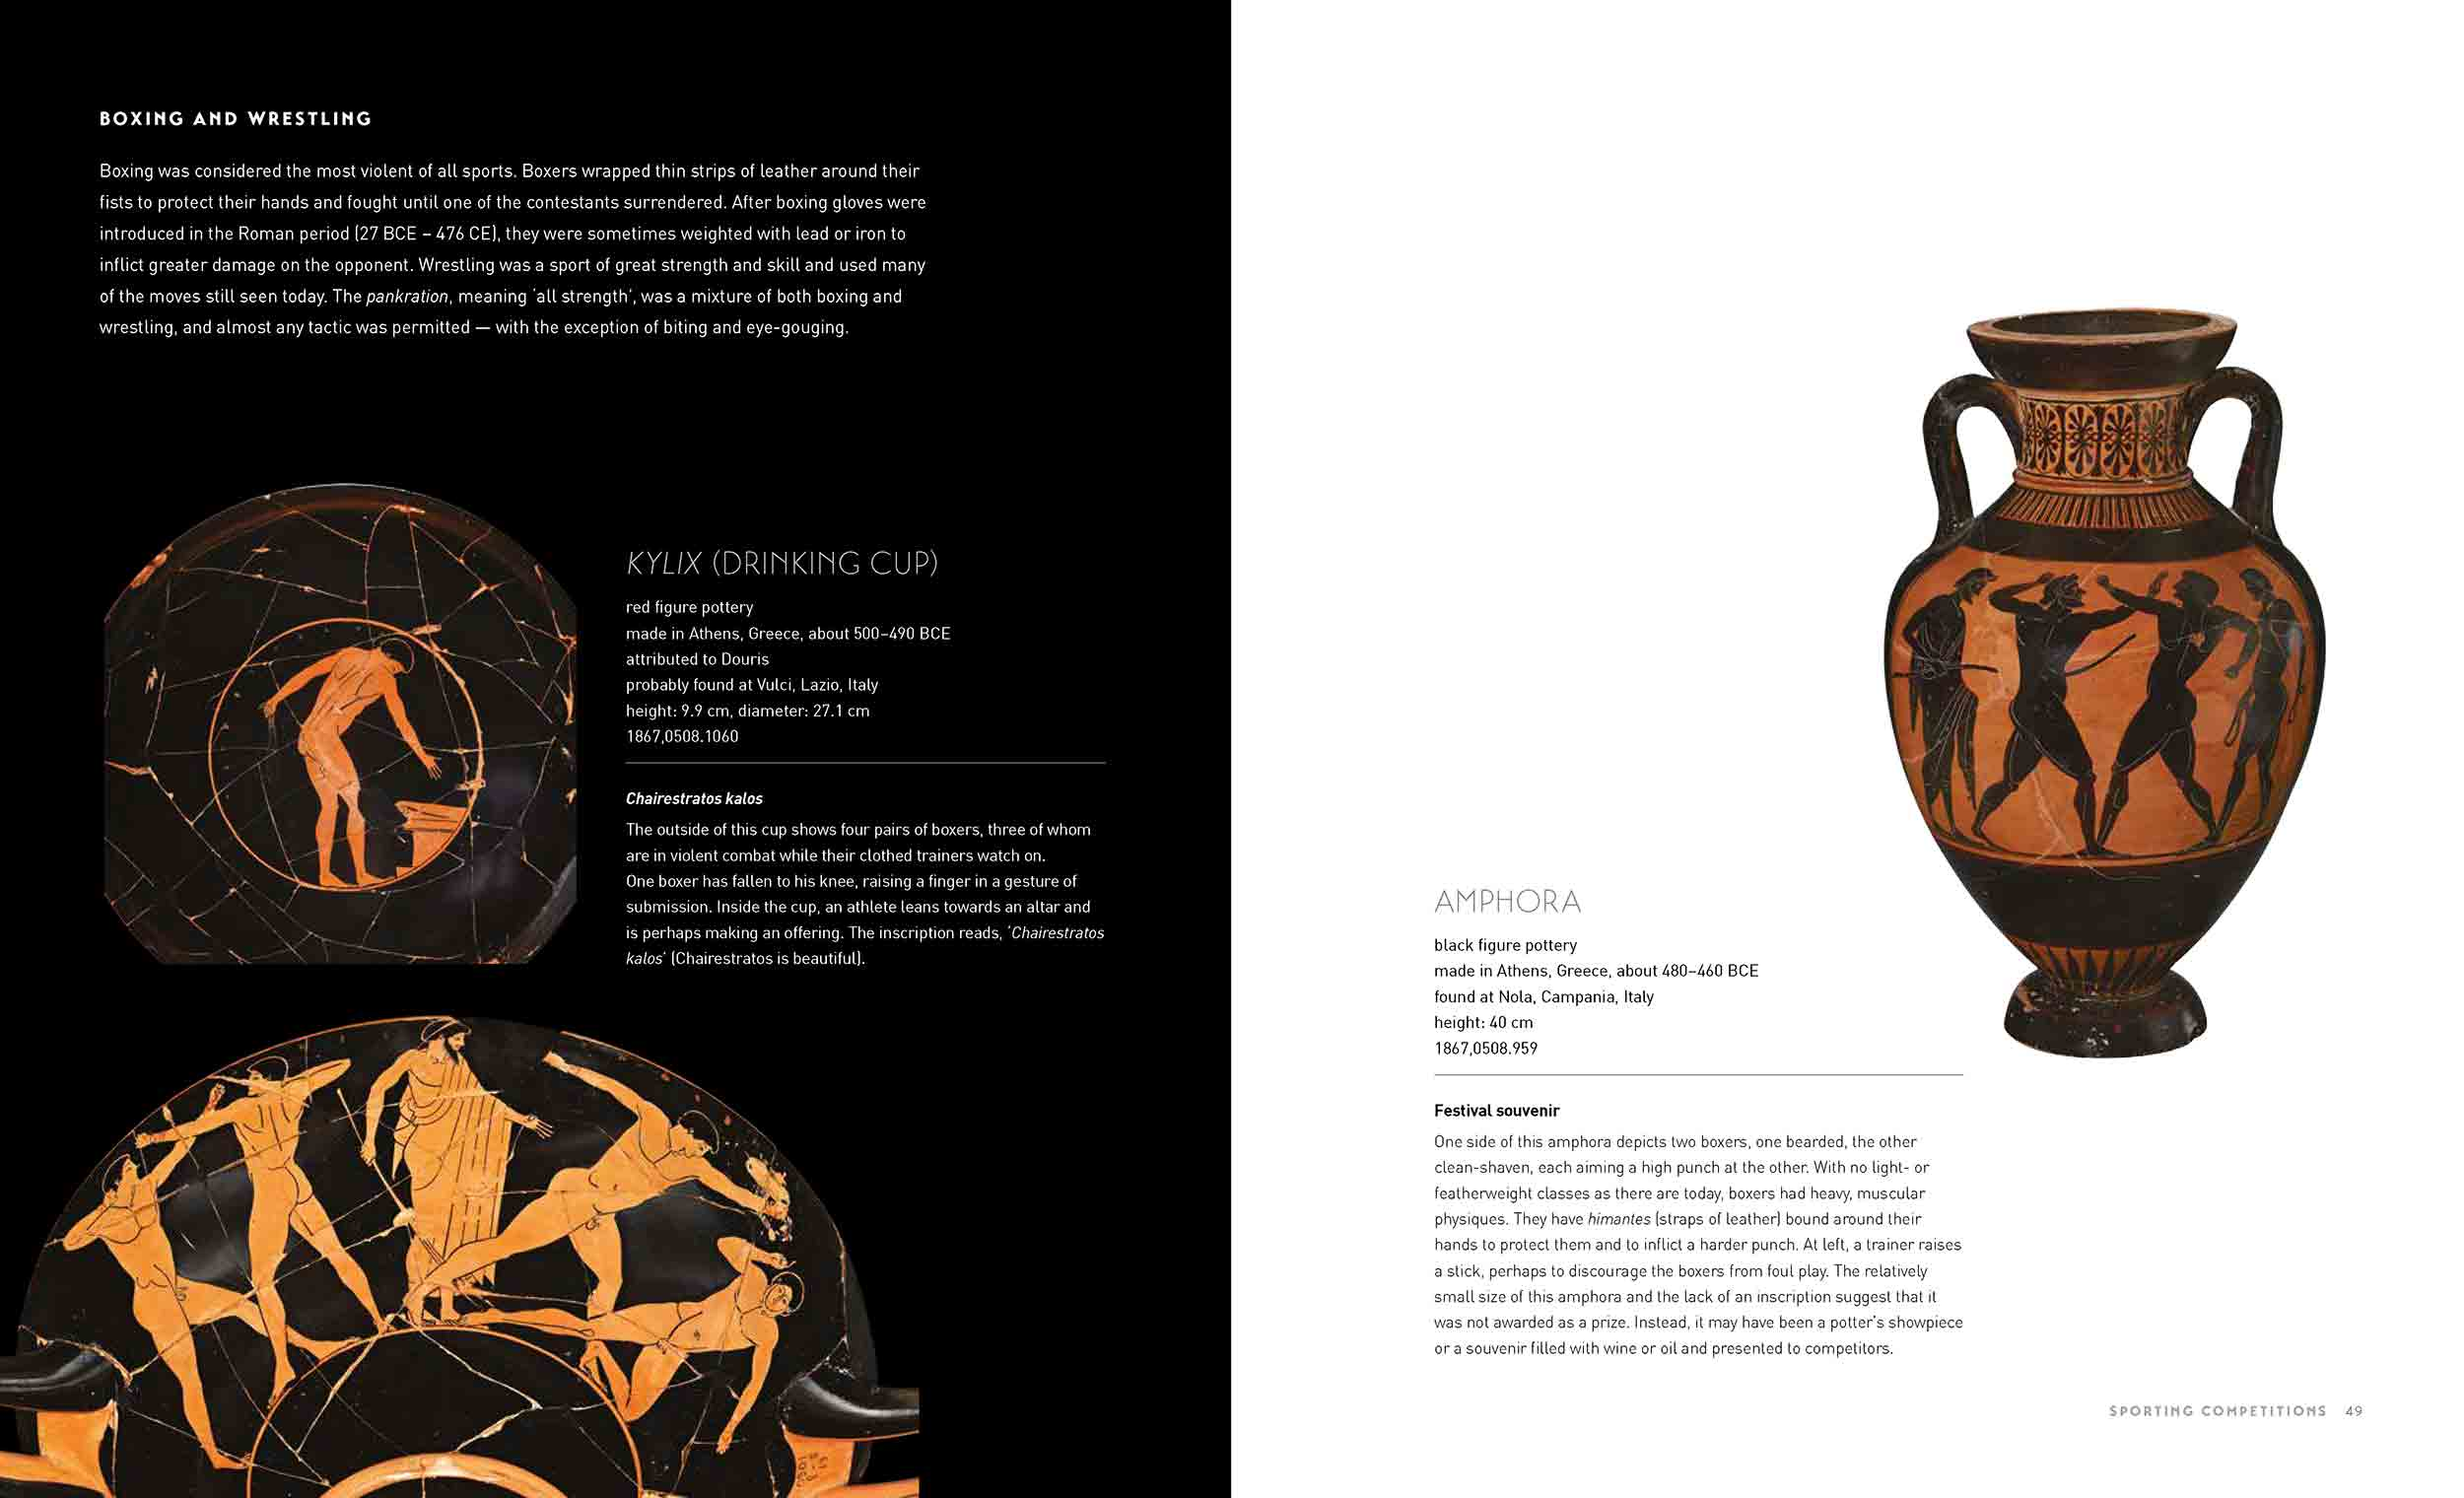 Sample page of a catalogue featuring a vase images and text. - click to view larger image